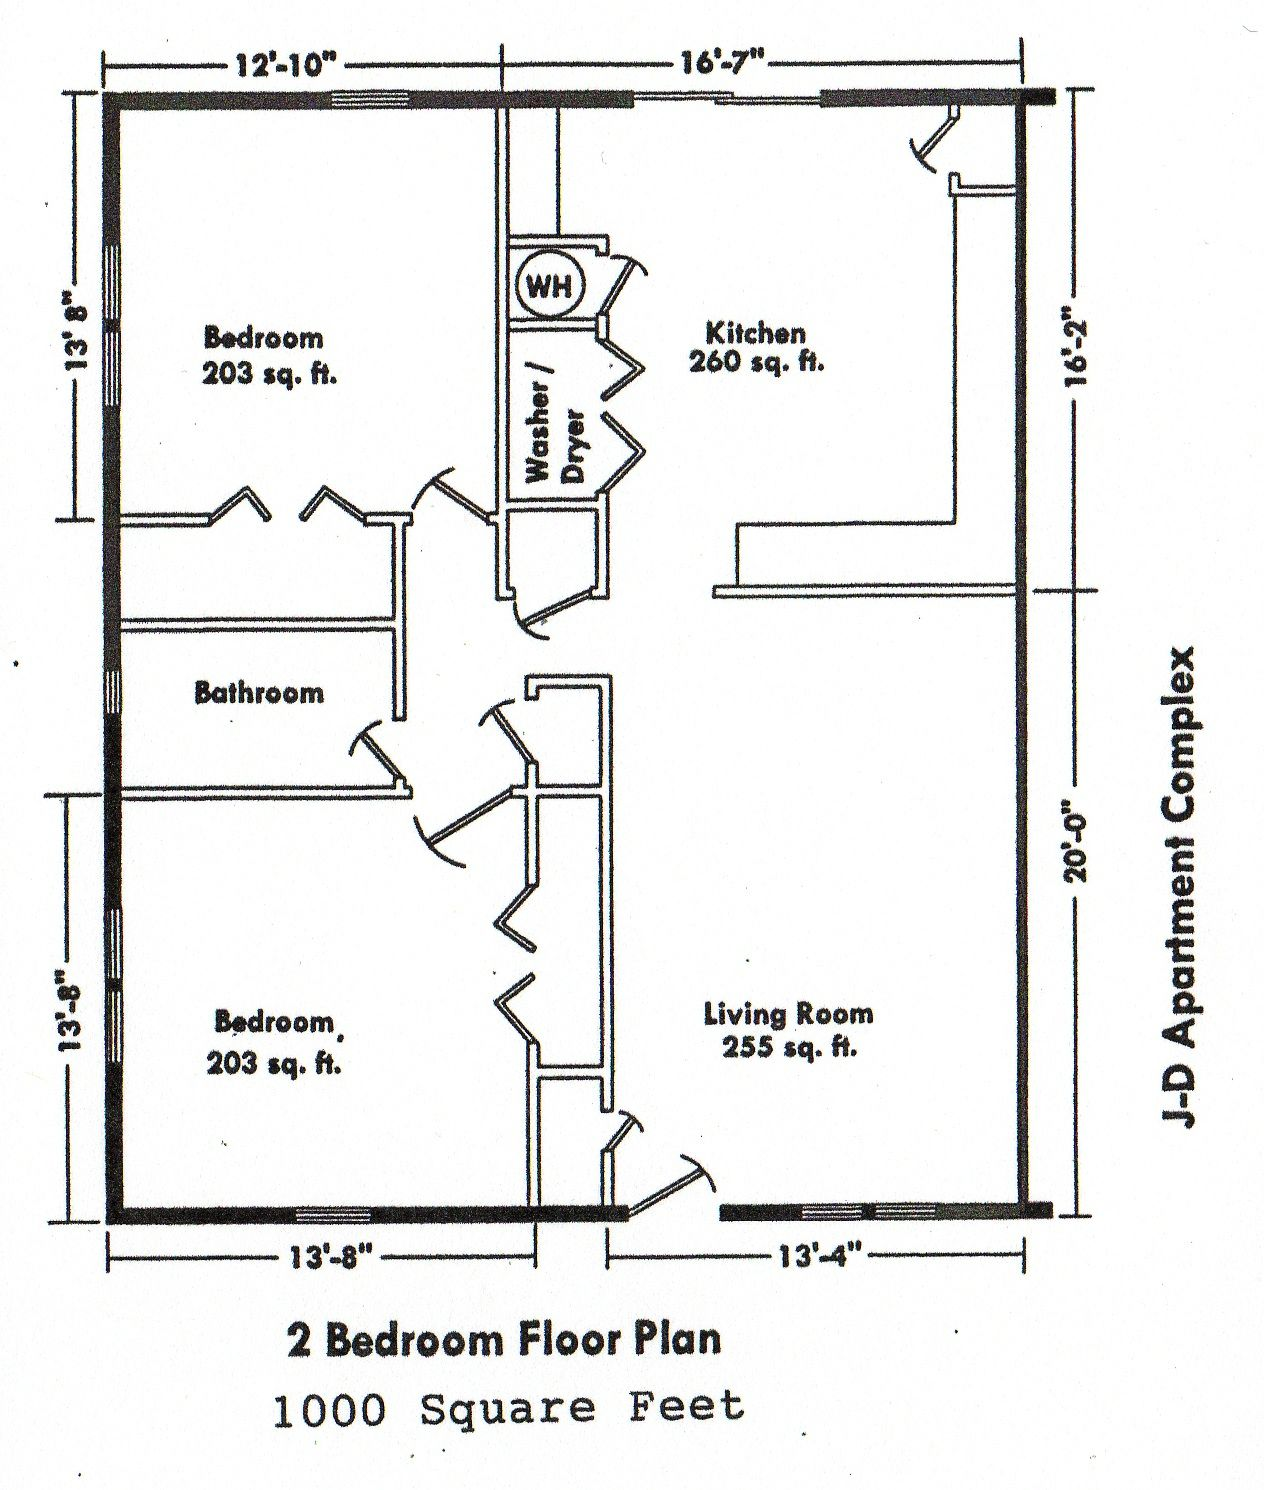 Small house floor plans 2 bedrooms master bedroom suite for Small house plans with 2 master suites